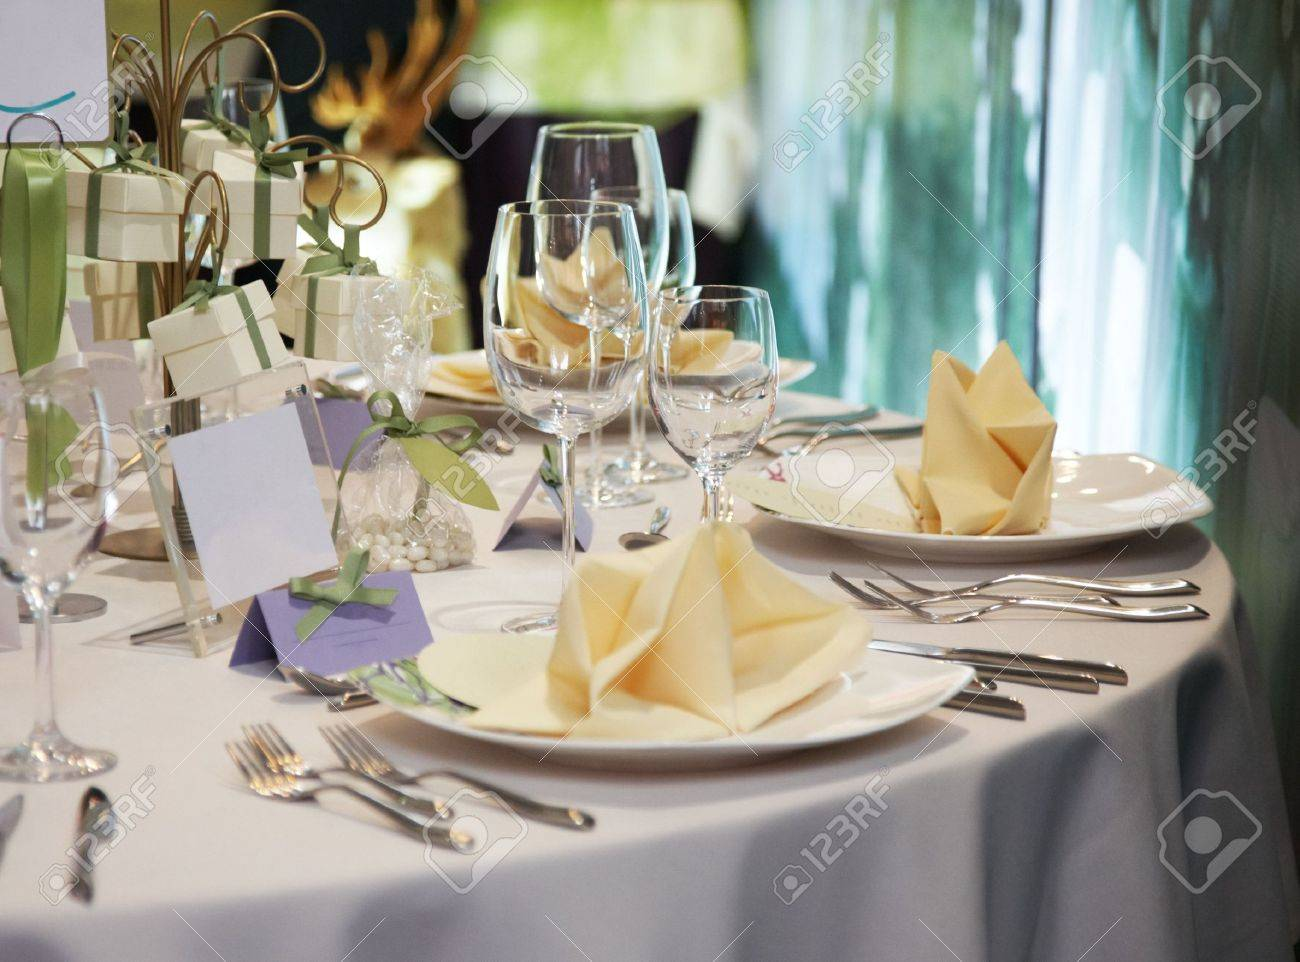 Elegant Table Setting For Wedding Stock Photo, Picture And Royalty ...